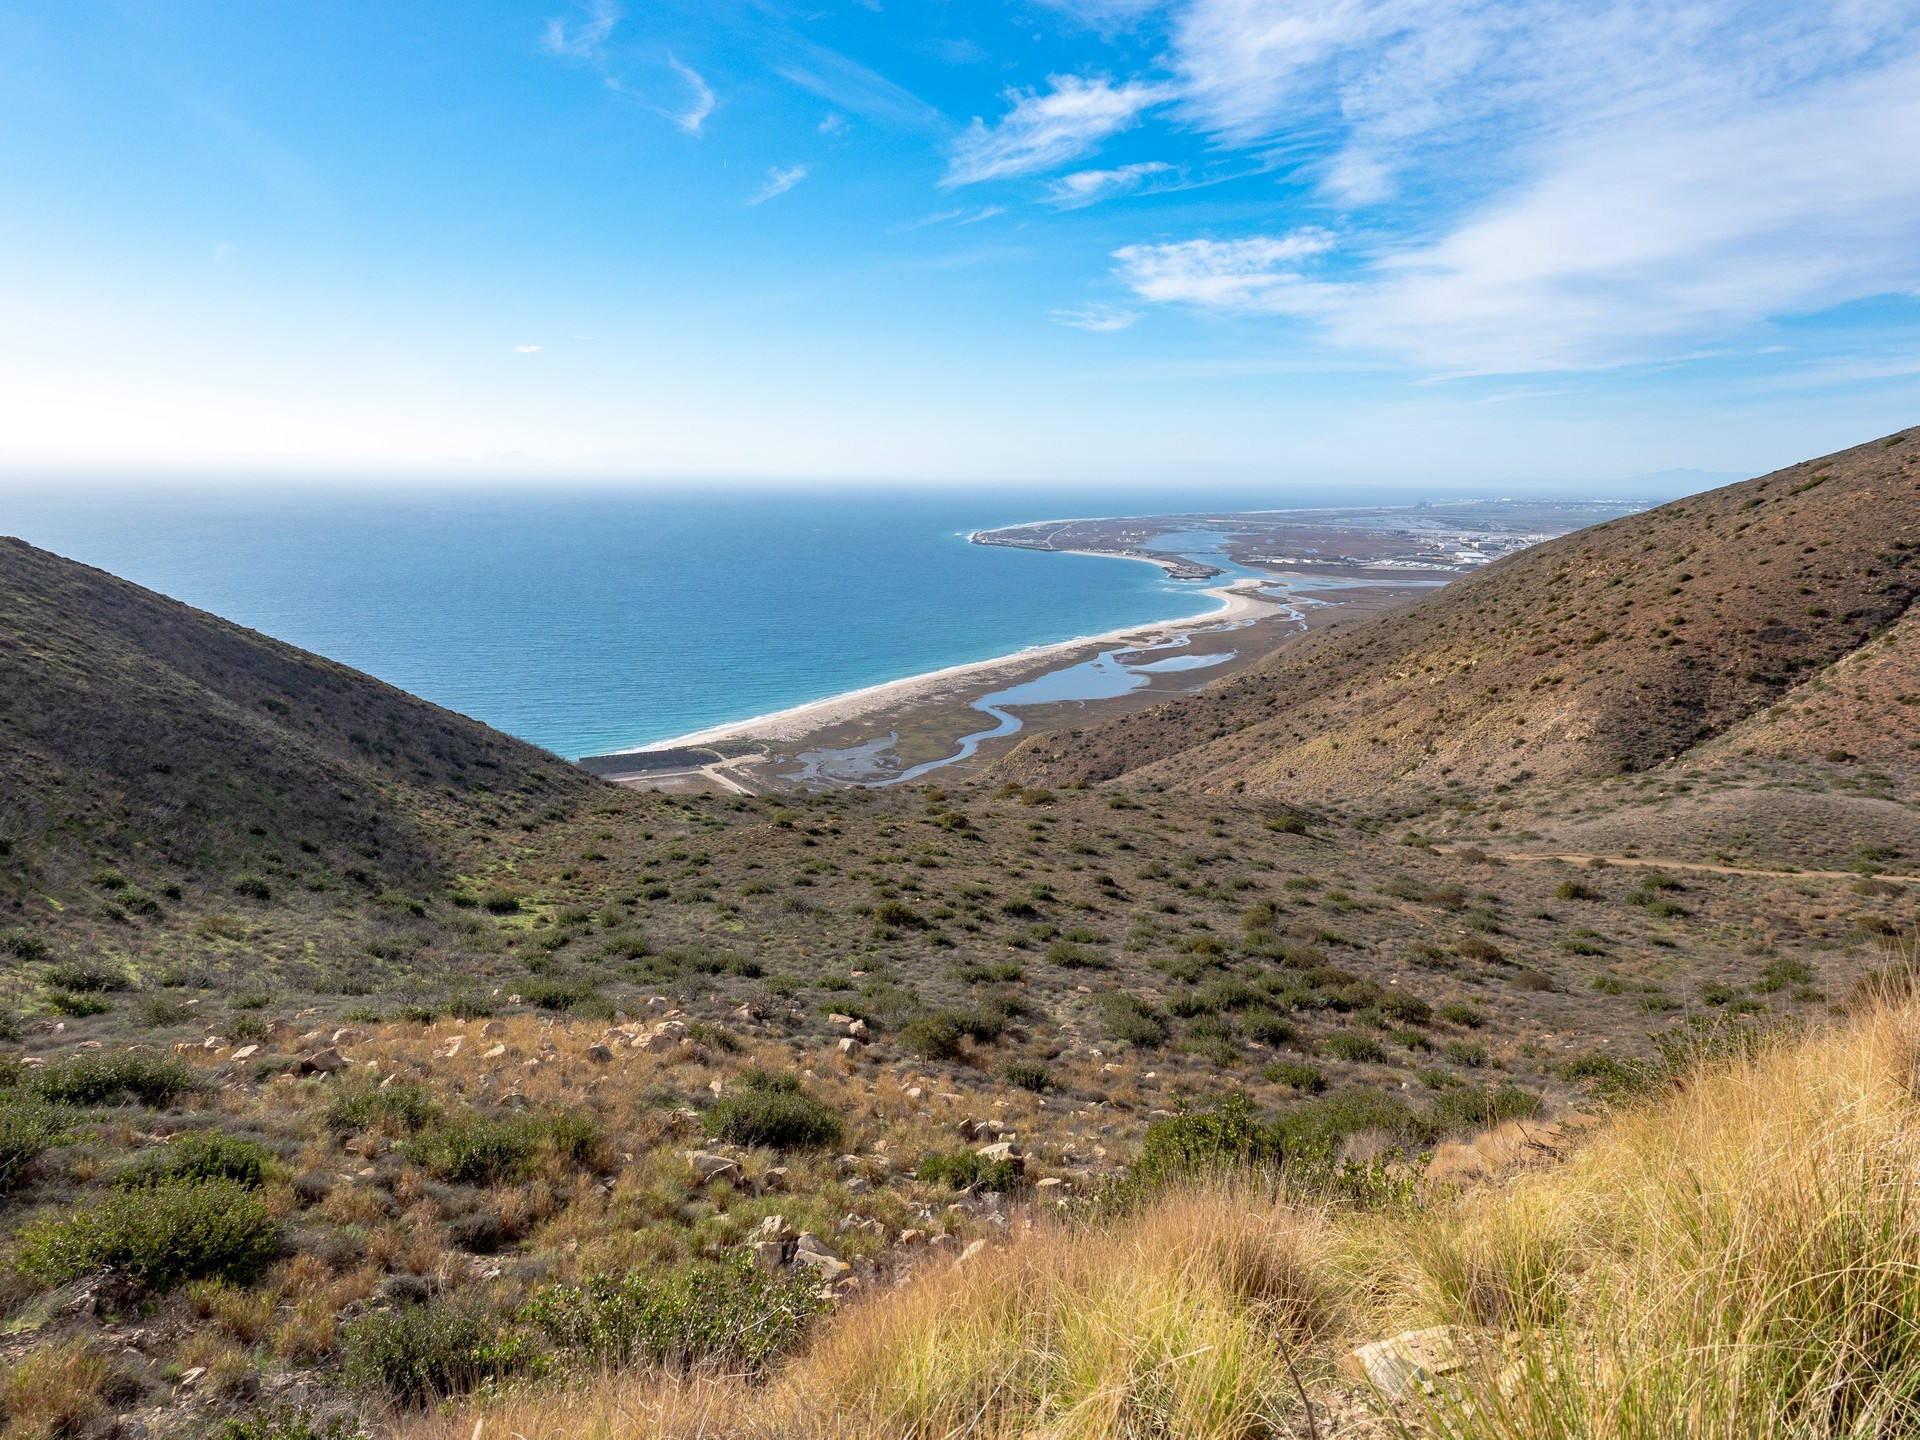 Port Hueneme Private Jet and Air Charter Flights